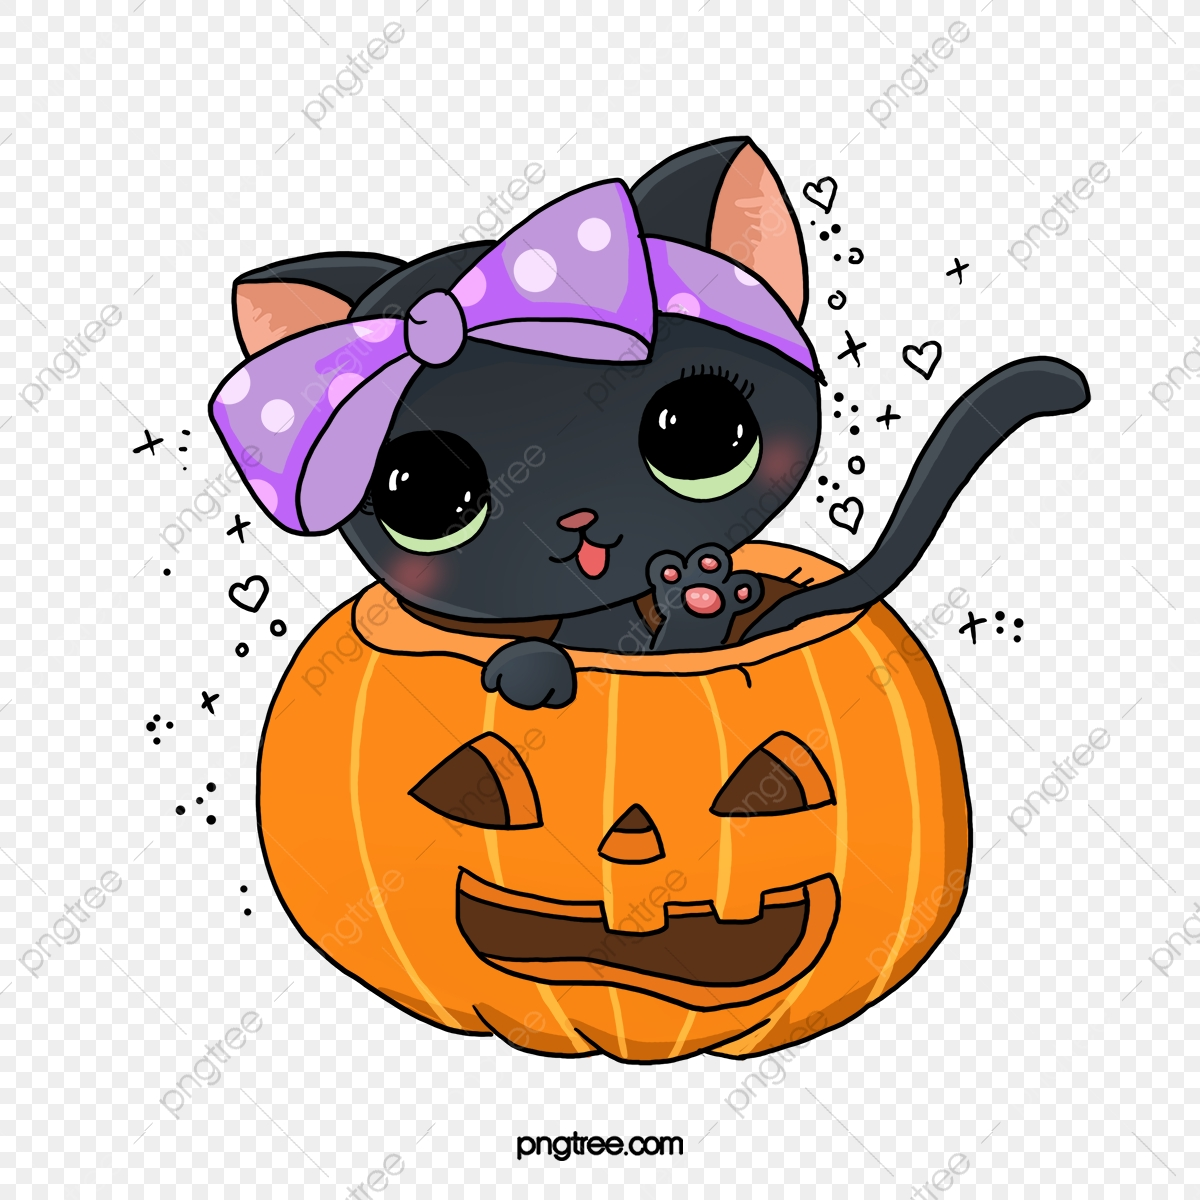 Cute Pictures Of Halloween.Cute Cartoon Halloween Bow Cat Cat Lovely Halloween Png Transparent Clipart Image And Psd File For Free Download